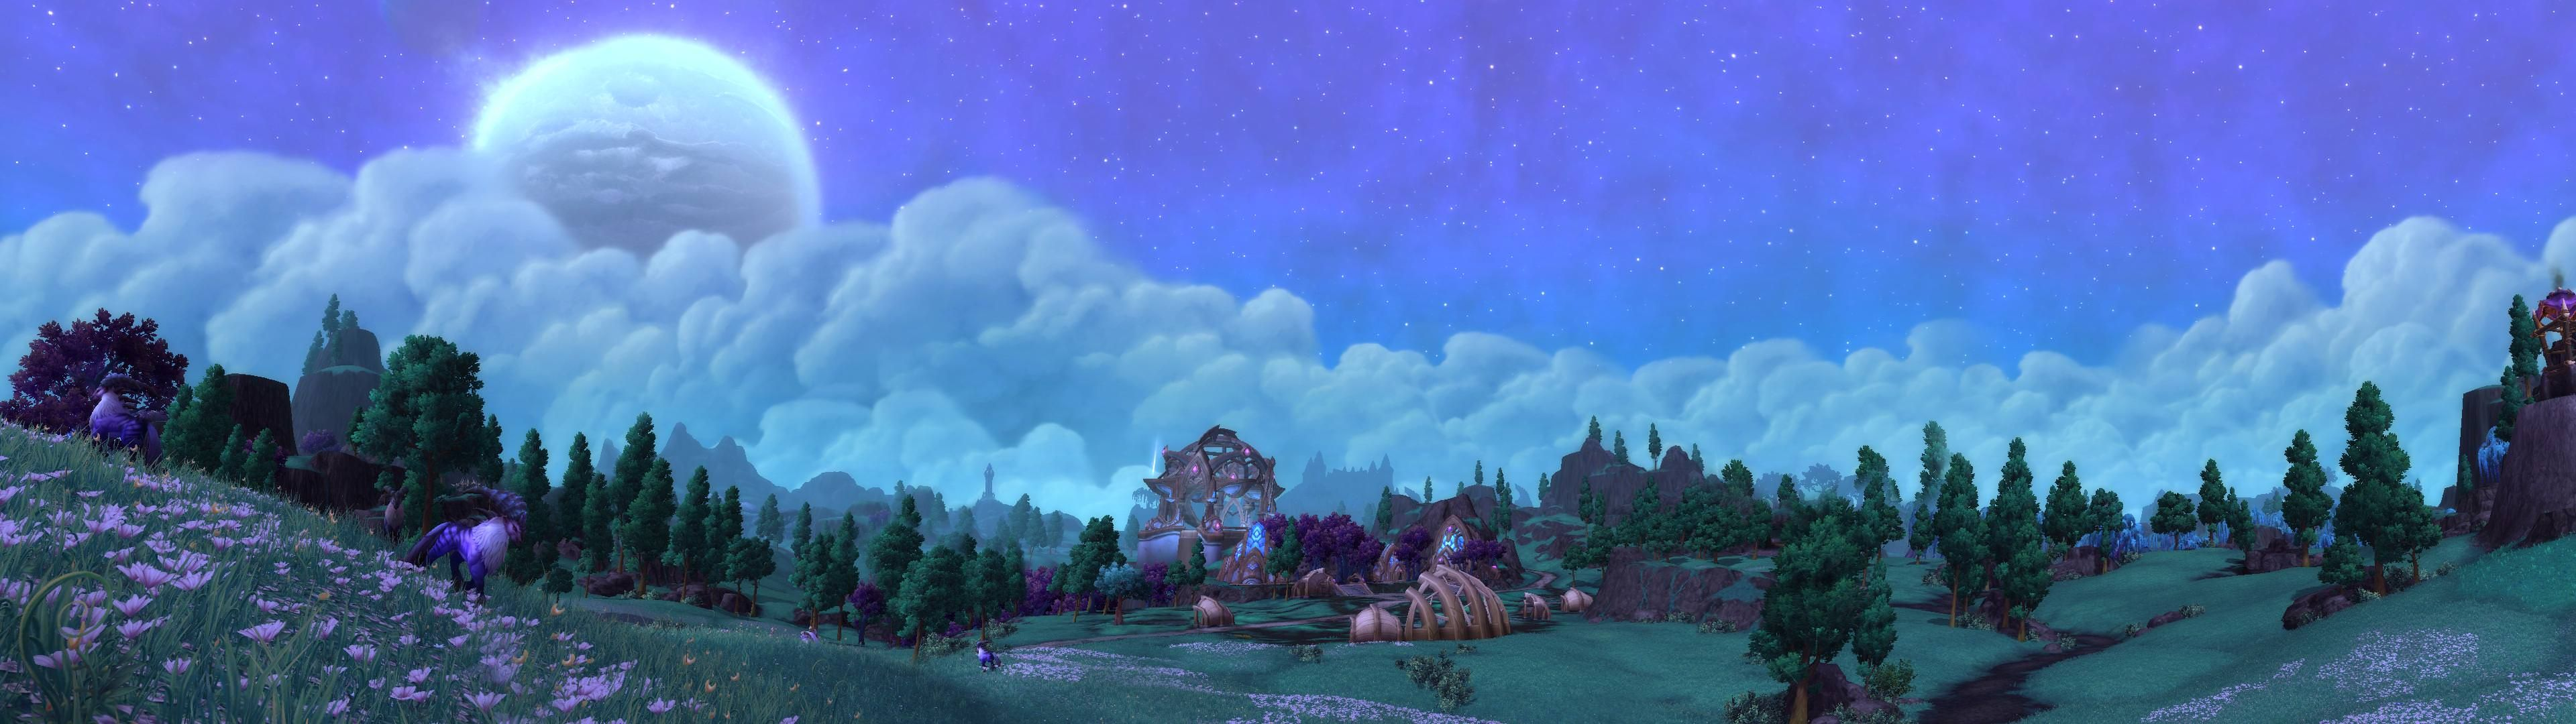 I Ve Enjoyed Trying To Make These So Here S Another Dual Wallpaper Of Shadowmoon Valley Draenor 3840x1080 Worldofwarcr In Wallpaper Warcraft World Of Warcraft